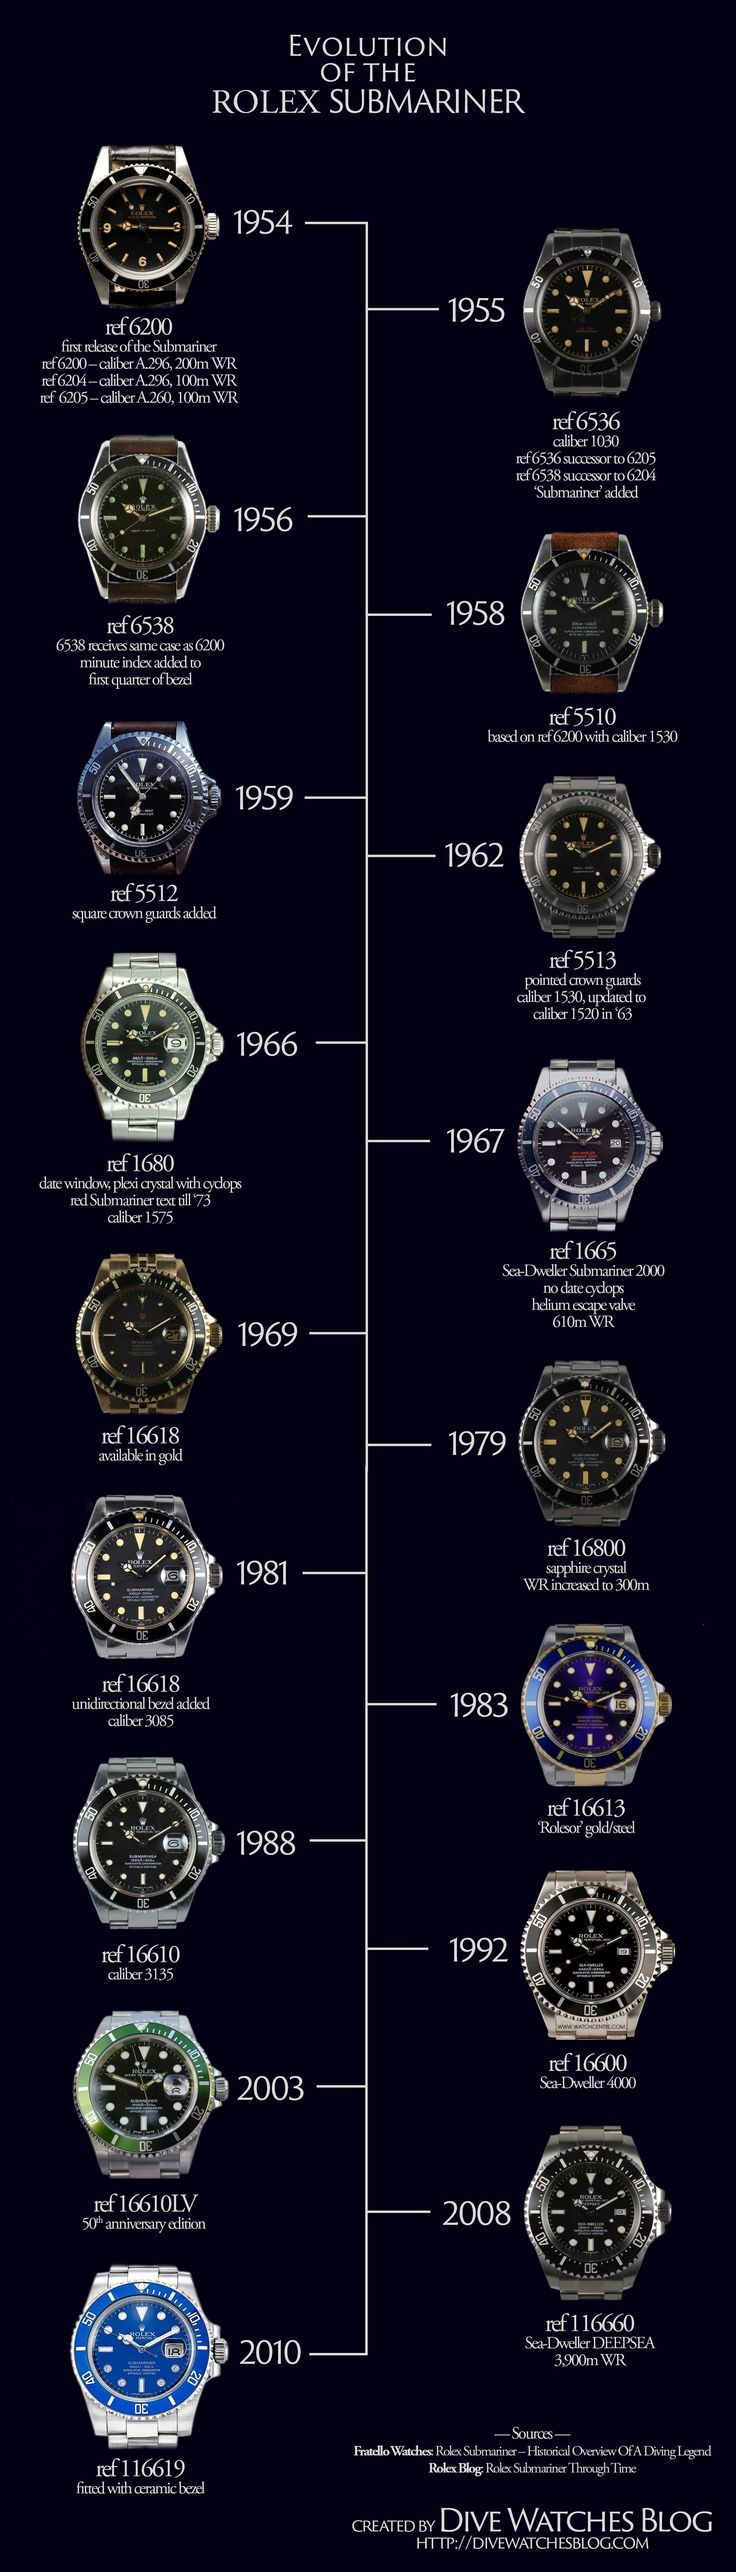 Submariner Rolex Evolution.